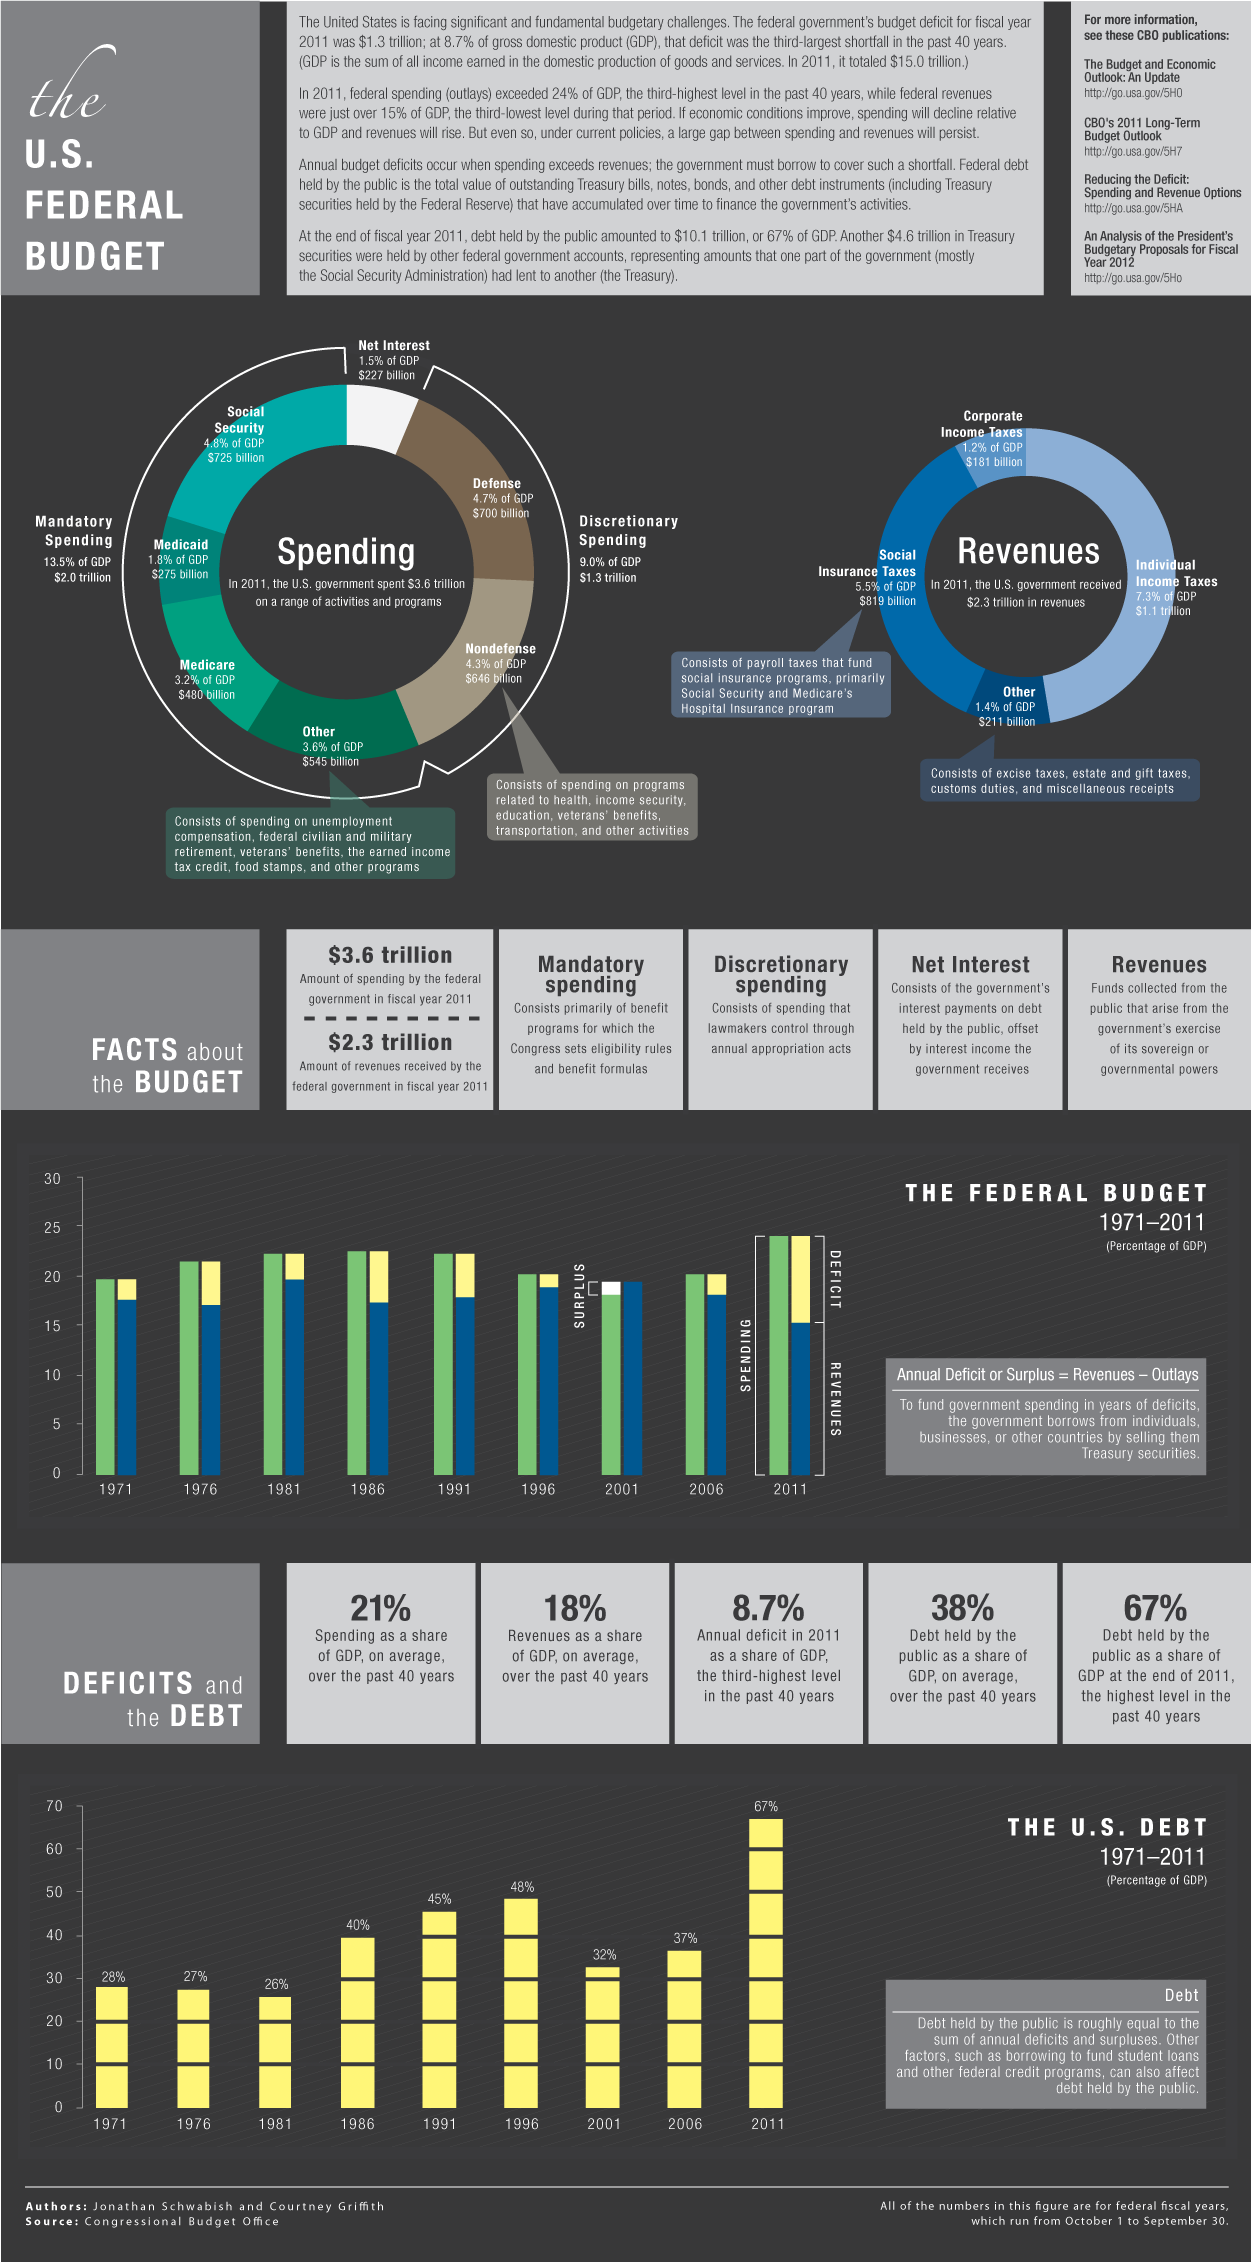 CBO's Budget Infographic